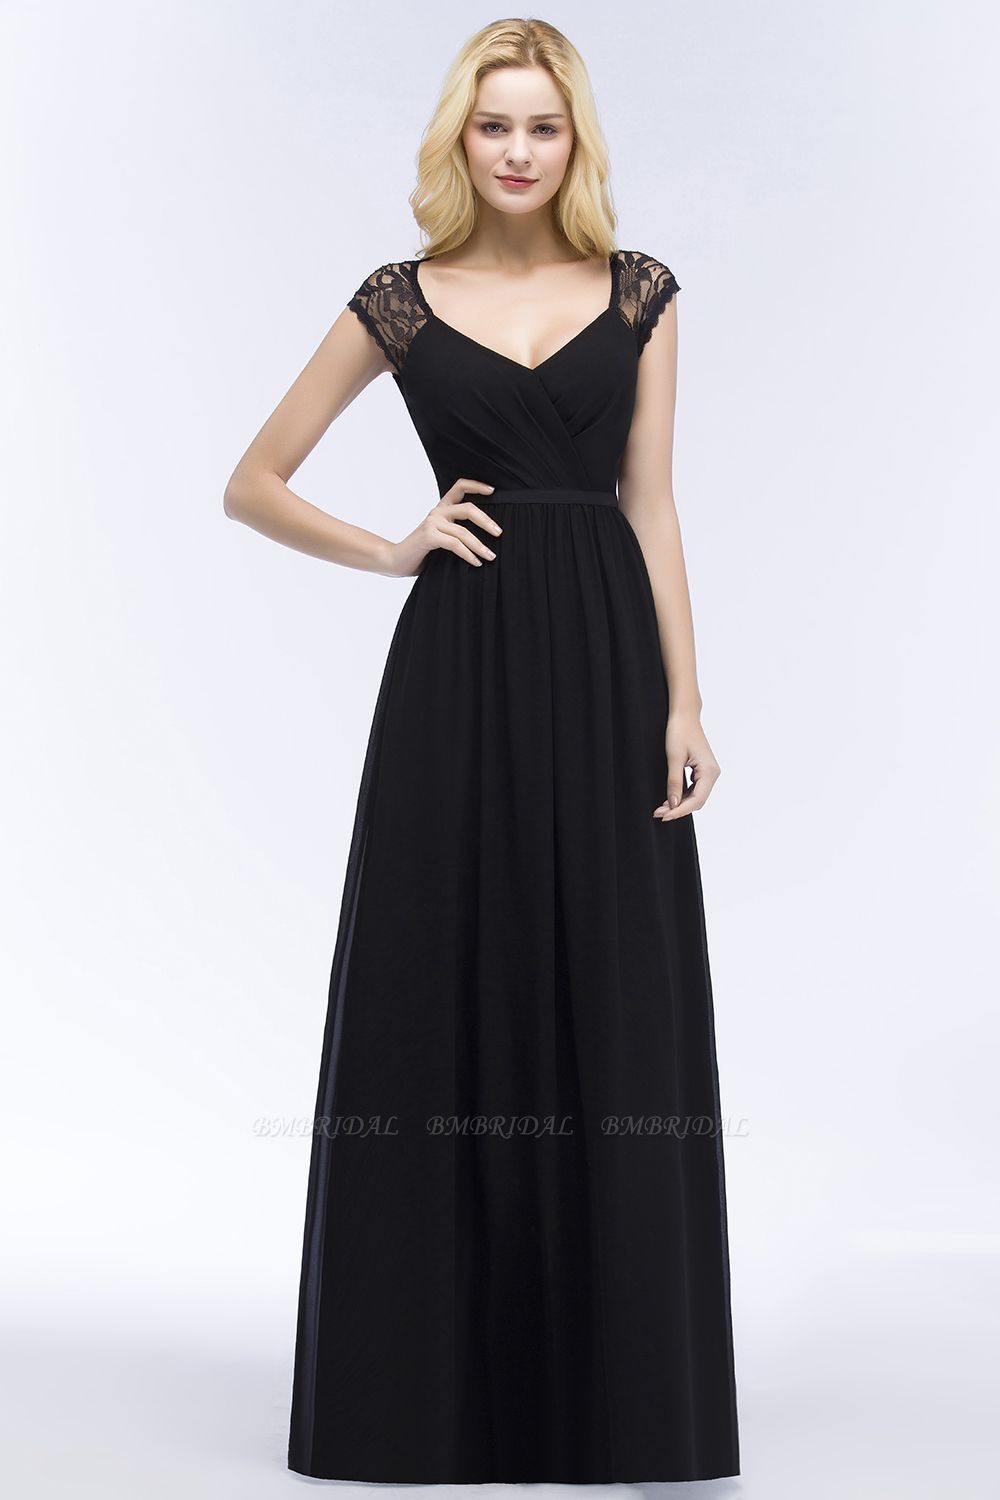 Elegant Lace Black V-Neck Sleeveless Bridesmaid Dress with Hollowout Back